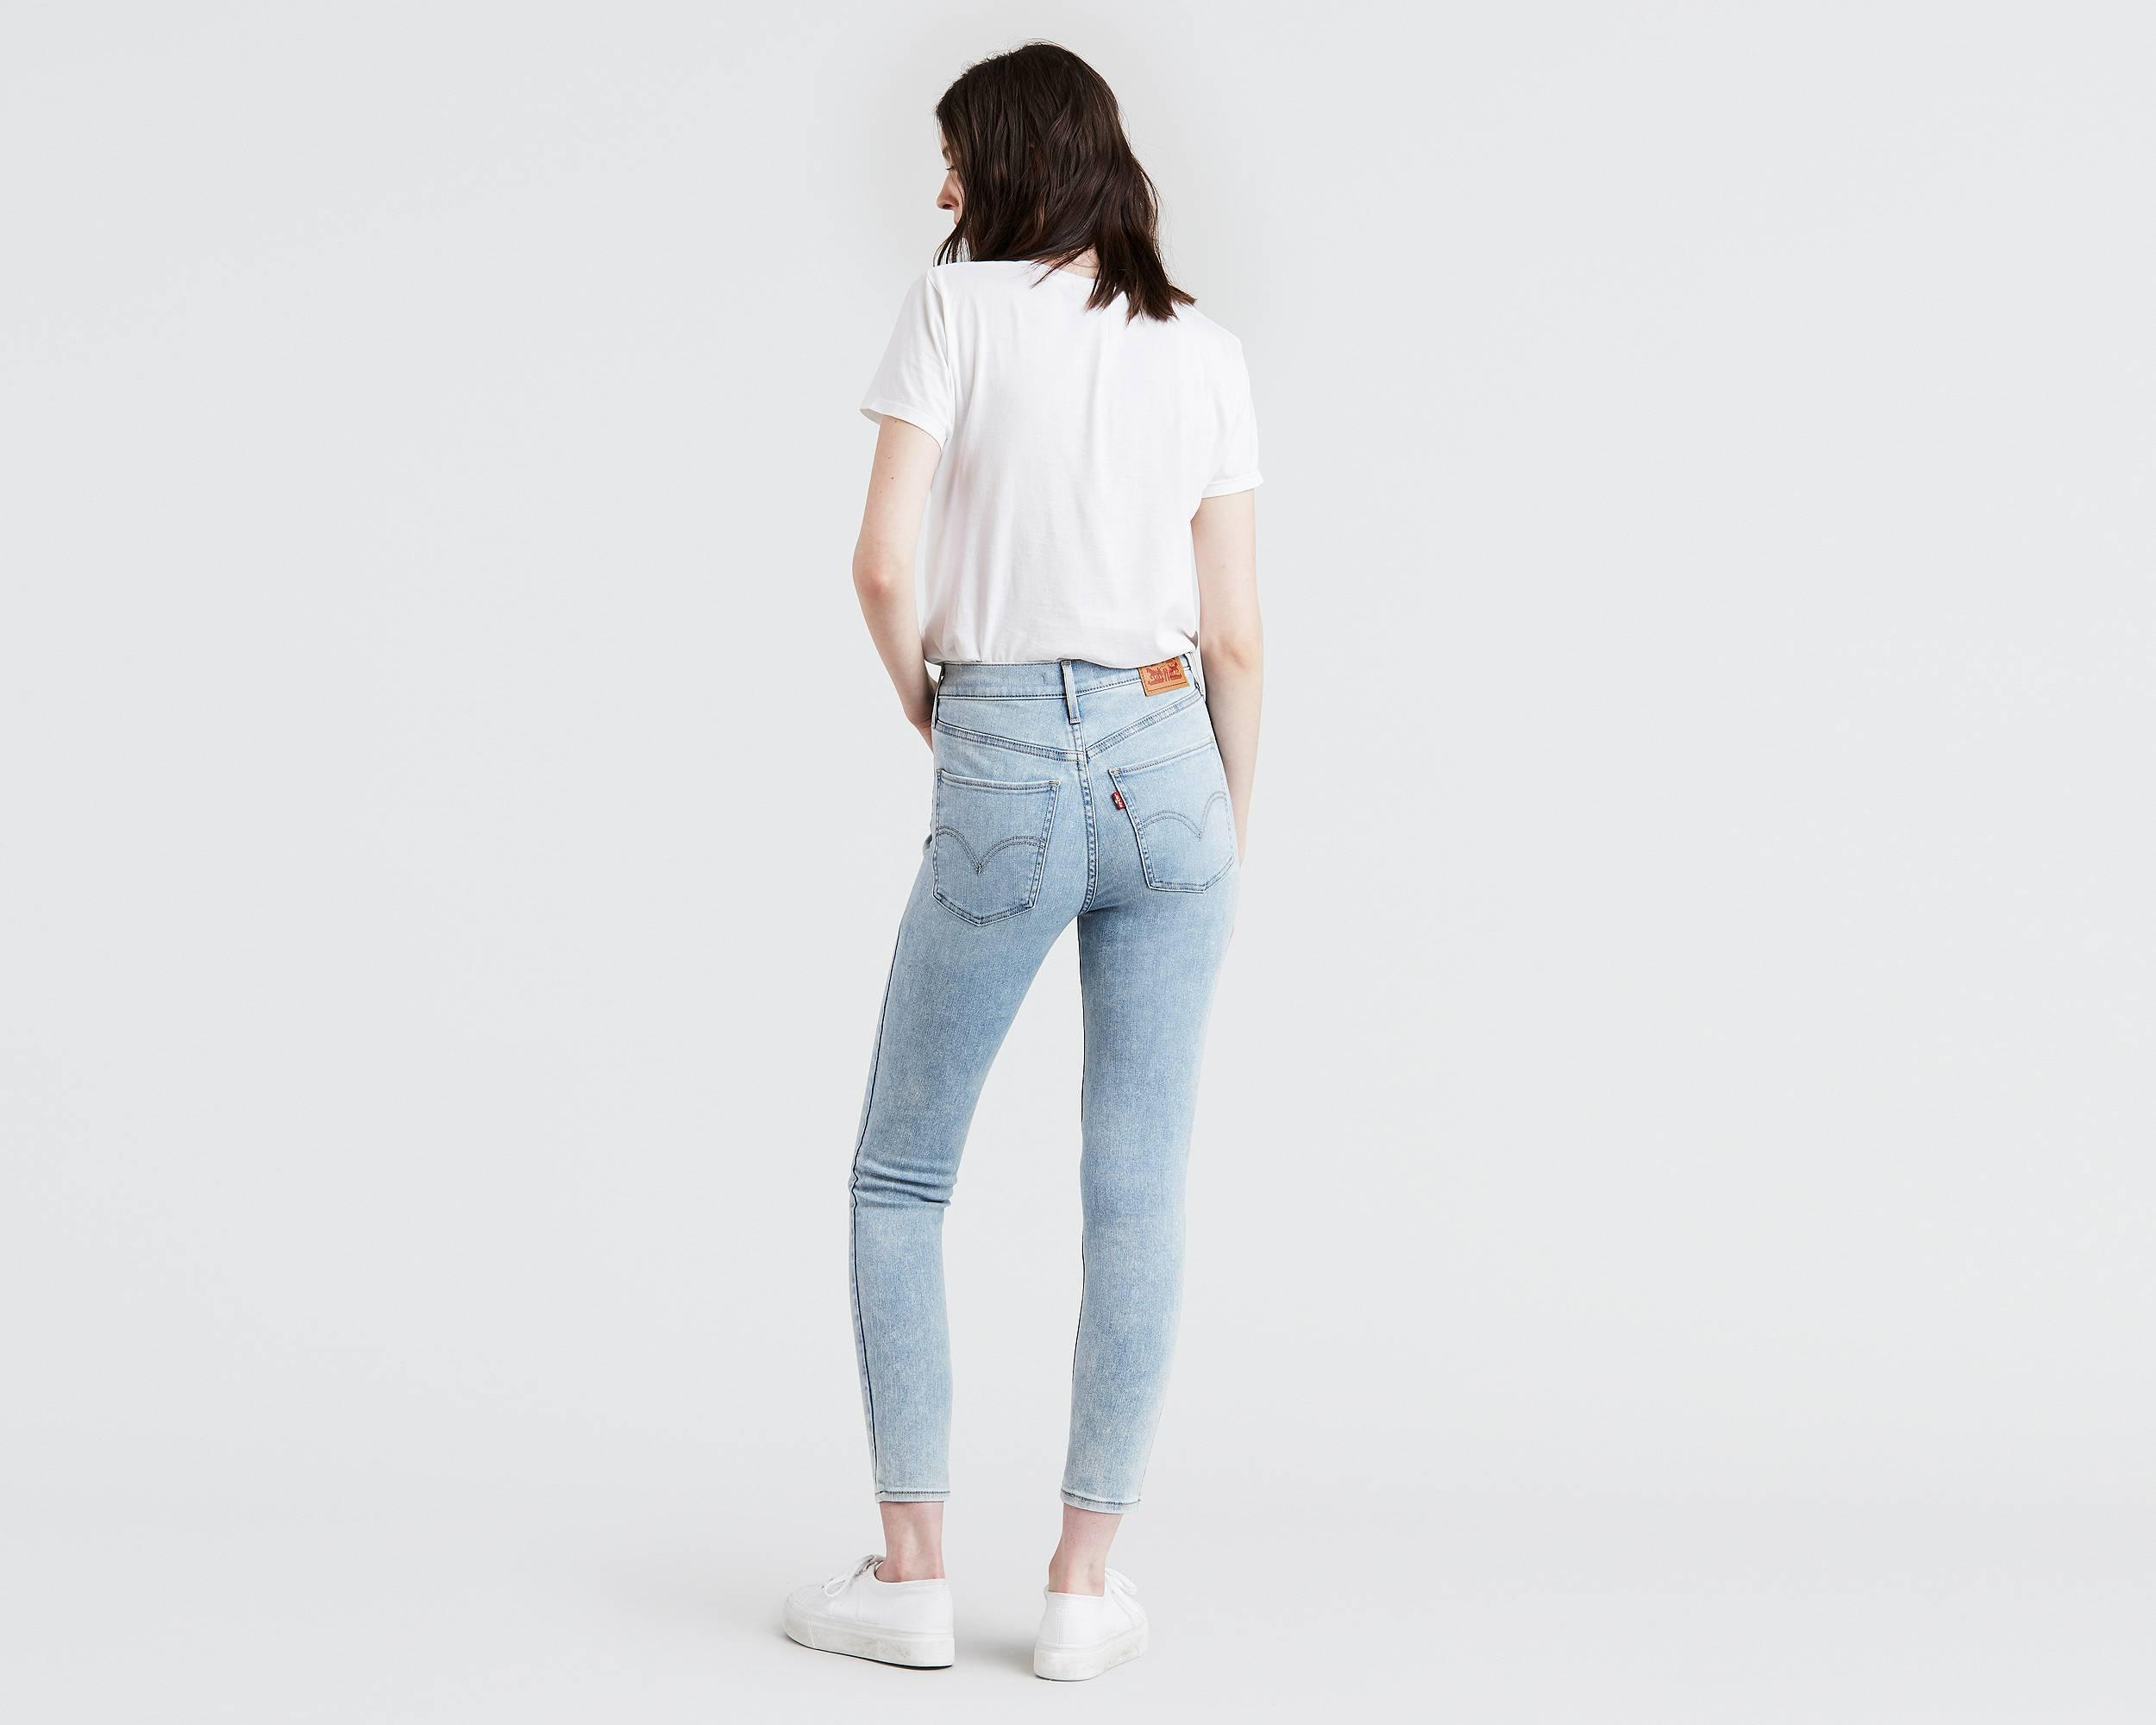 583c4725253500 Mile High Super Skinny Ankle Jeans - Levi's Jeans, Jackets & Clothing